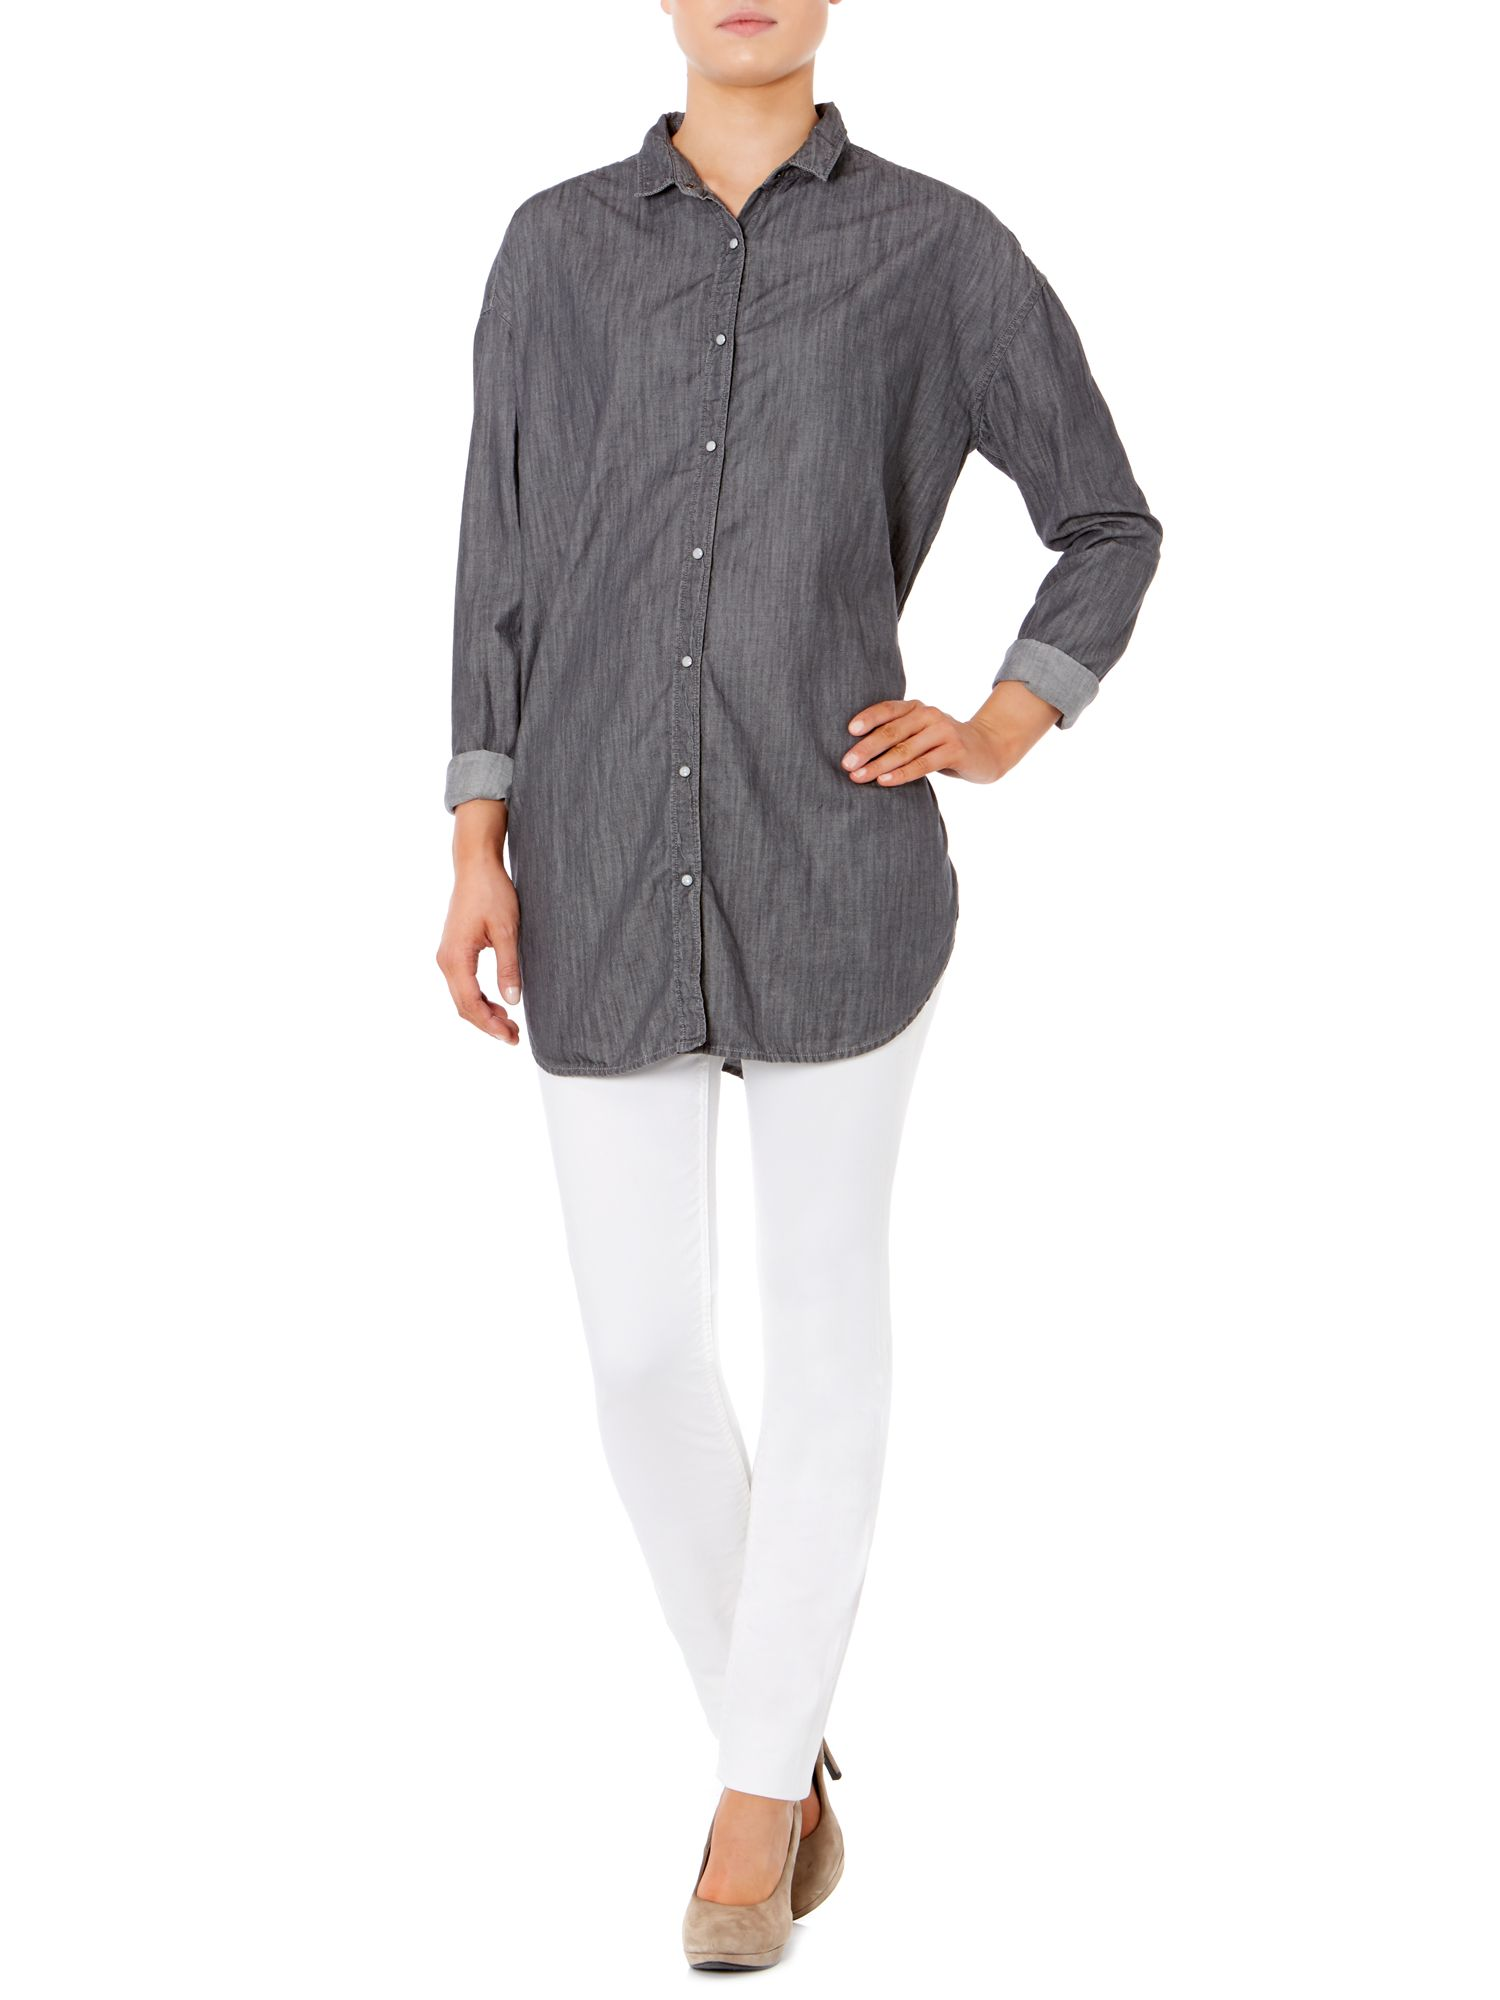 Whisper long sleeve denim shirt